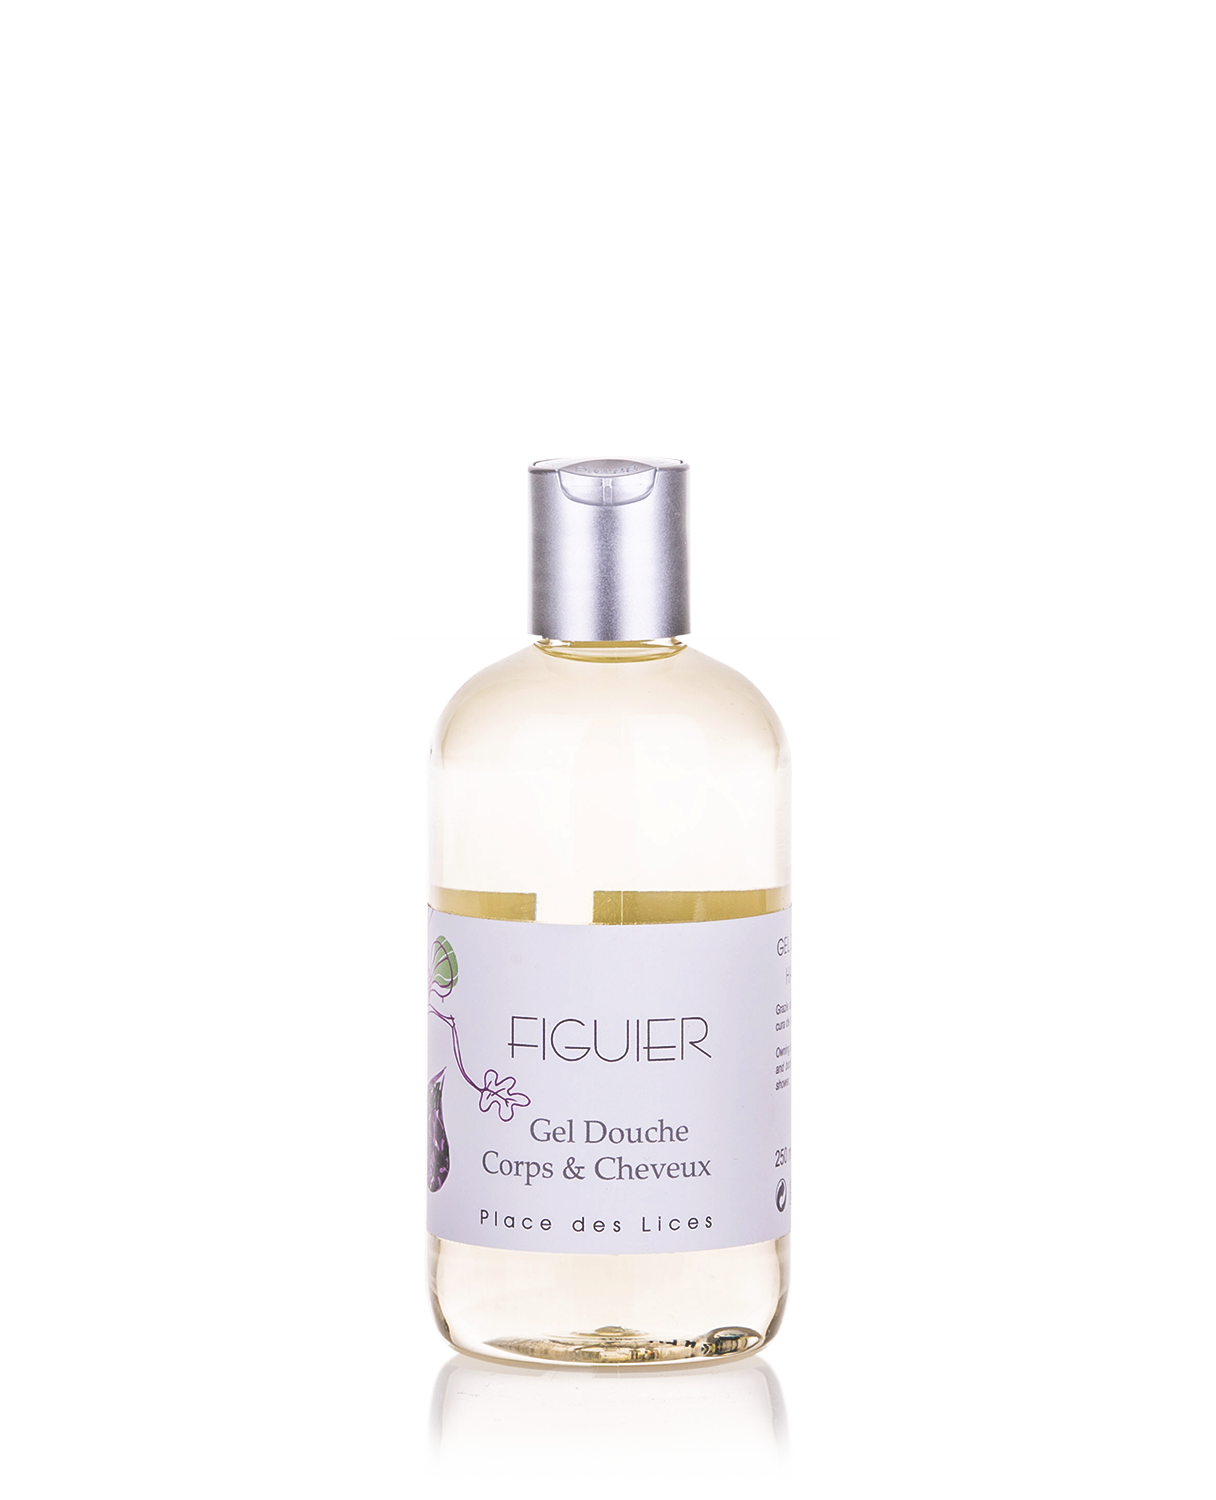 Figuier shower gel 250 ml Place des Lices